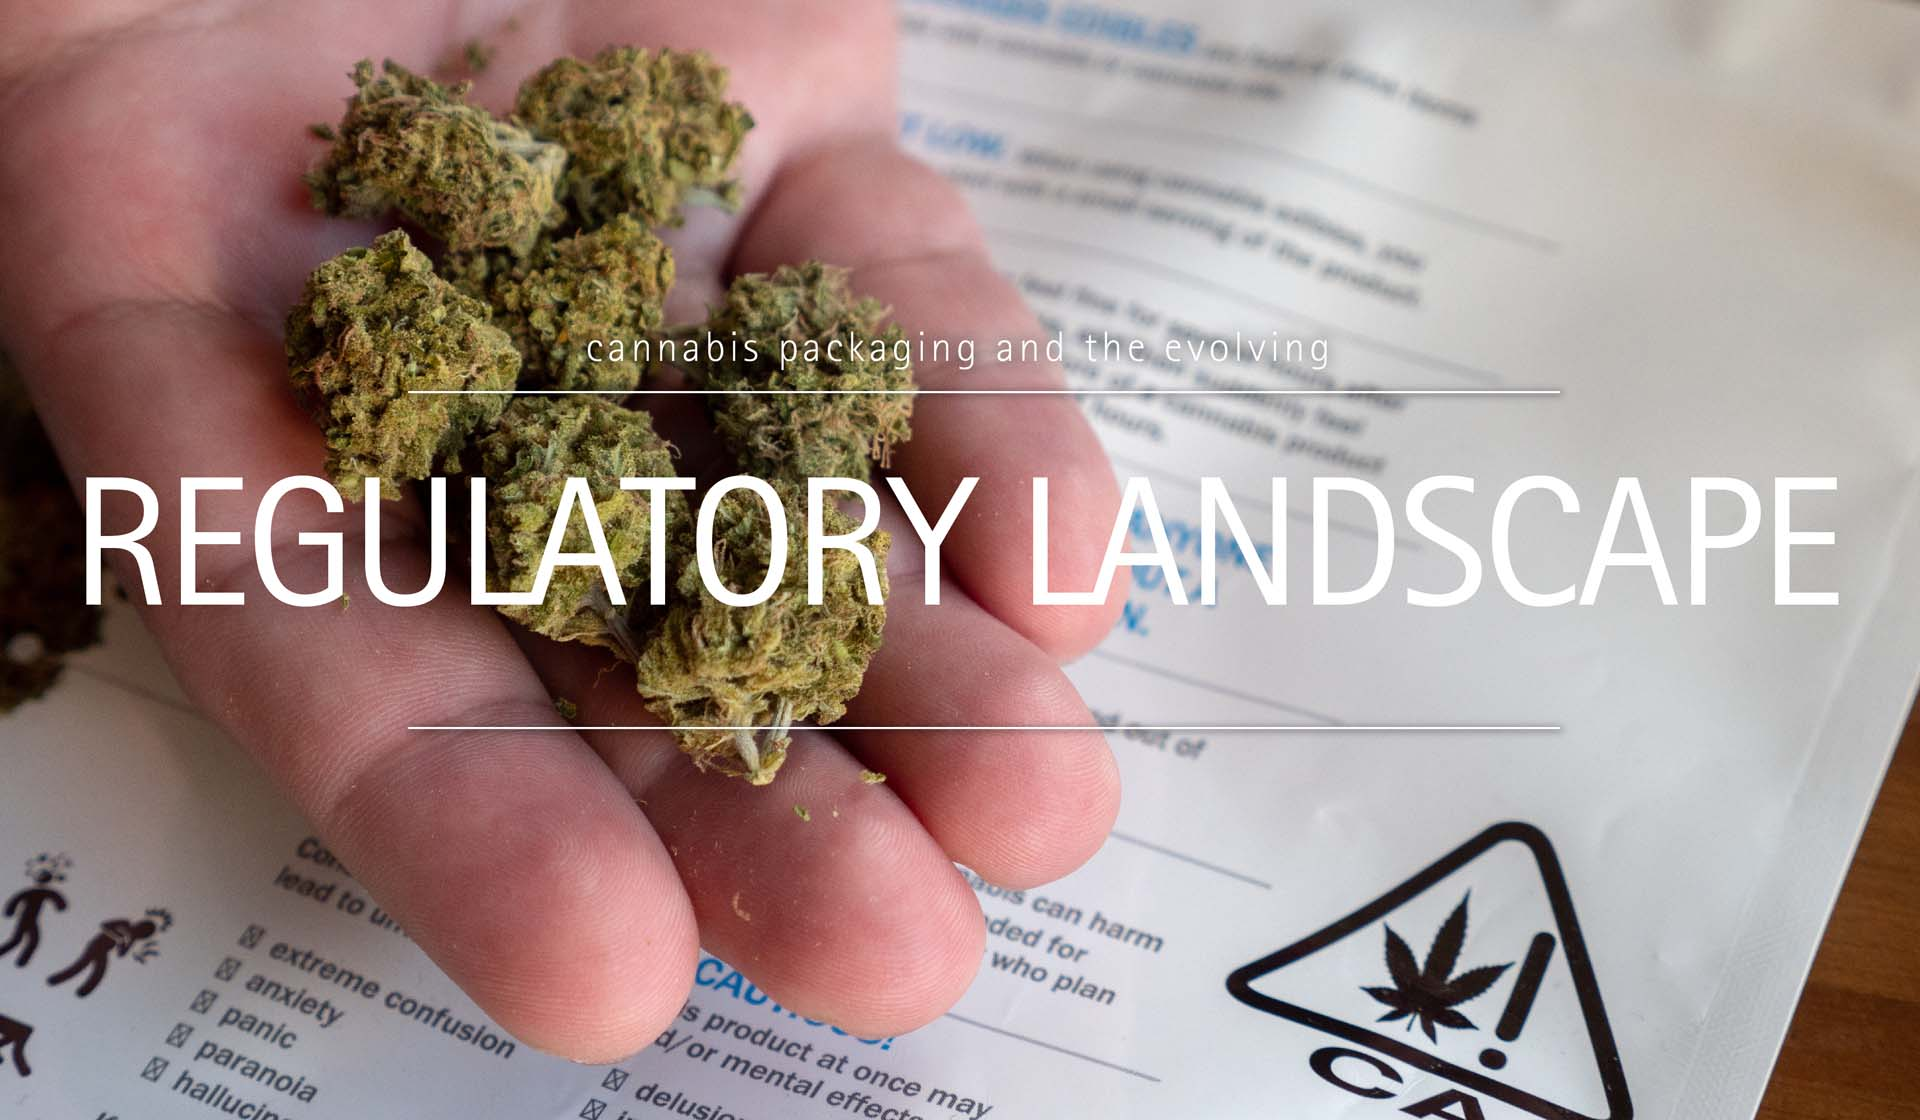 Cannabis Packaging and The Evolving Regulatory Landscape